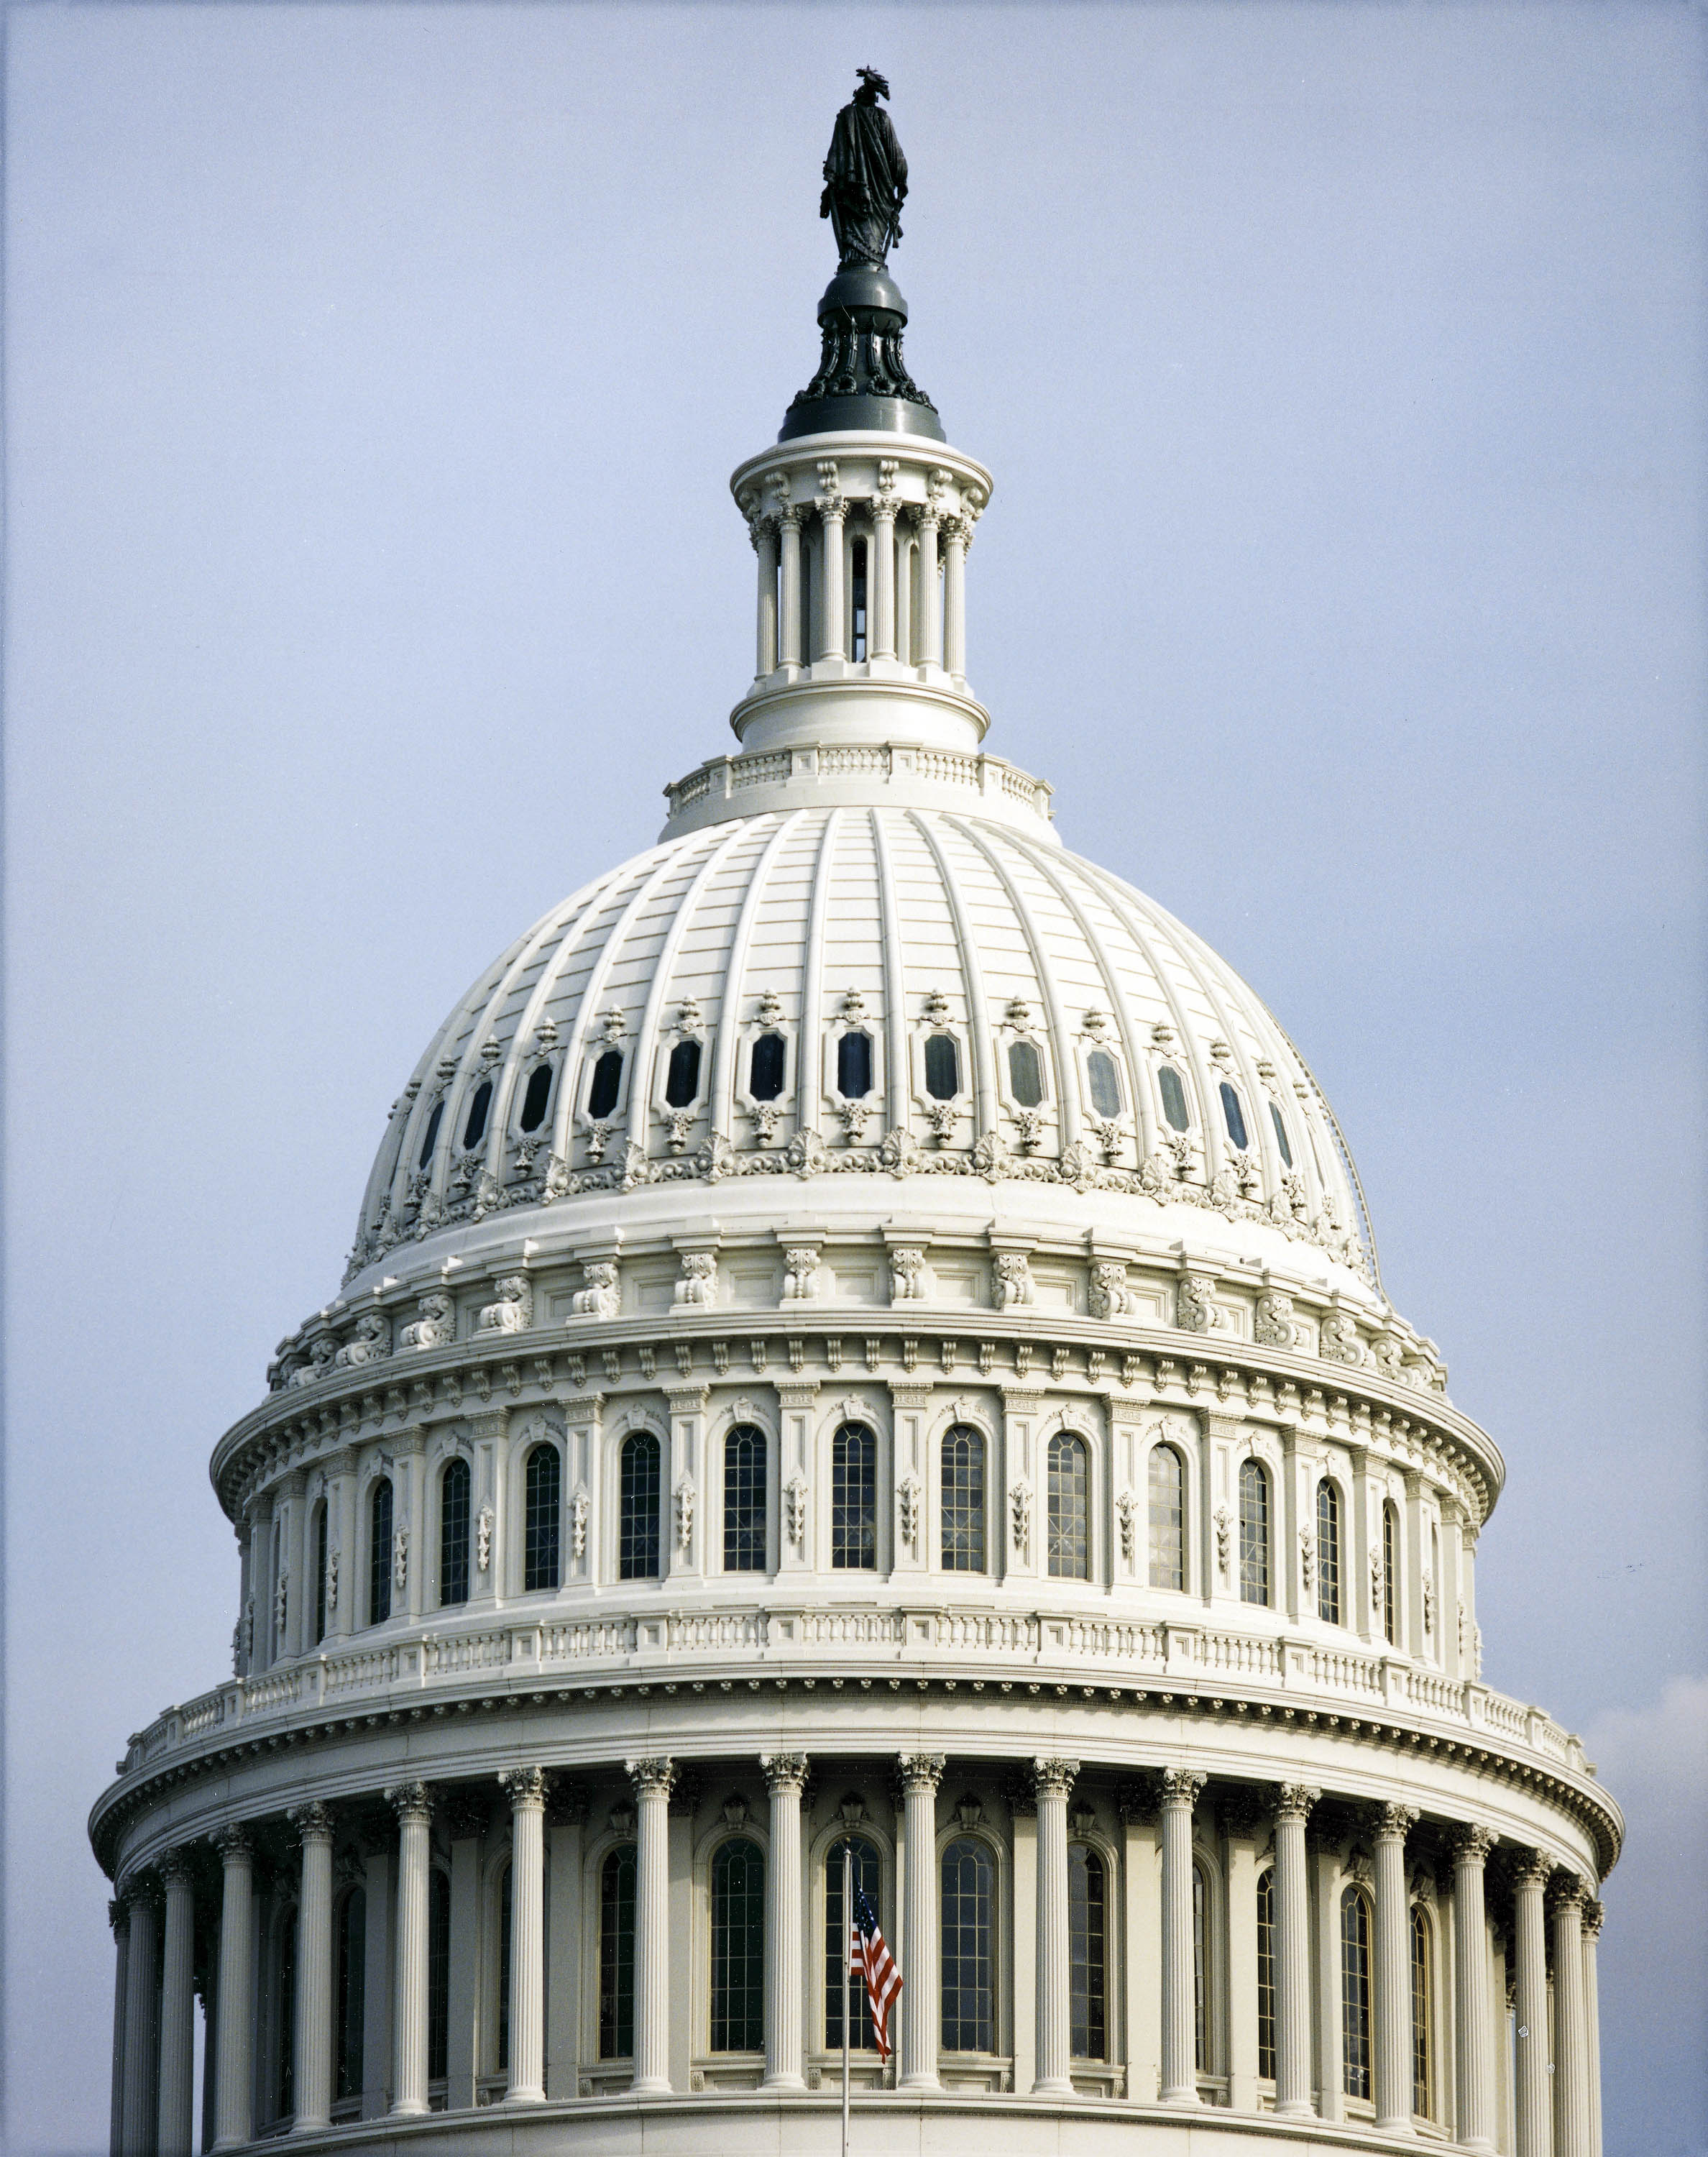 Credit: Architect of the Capitol